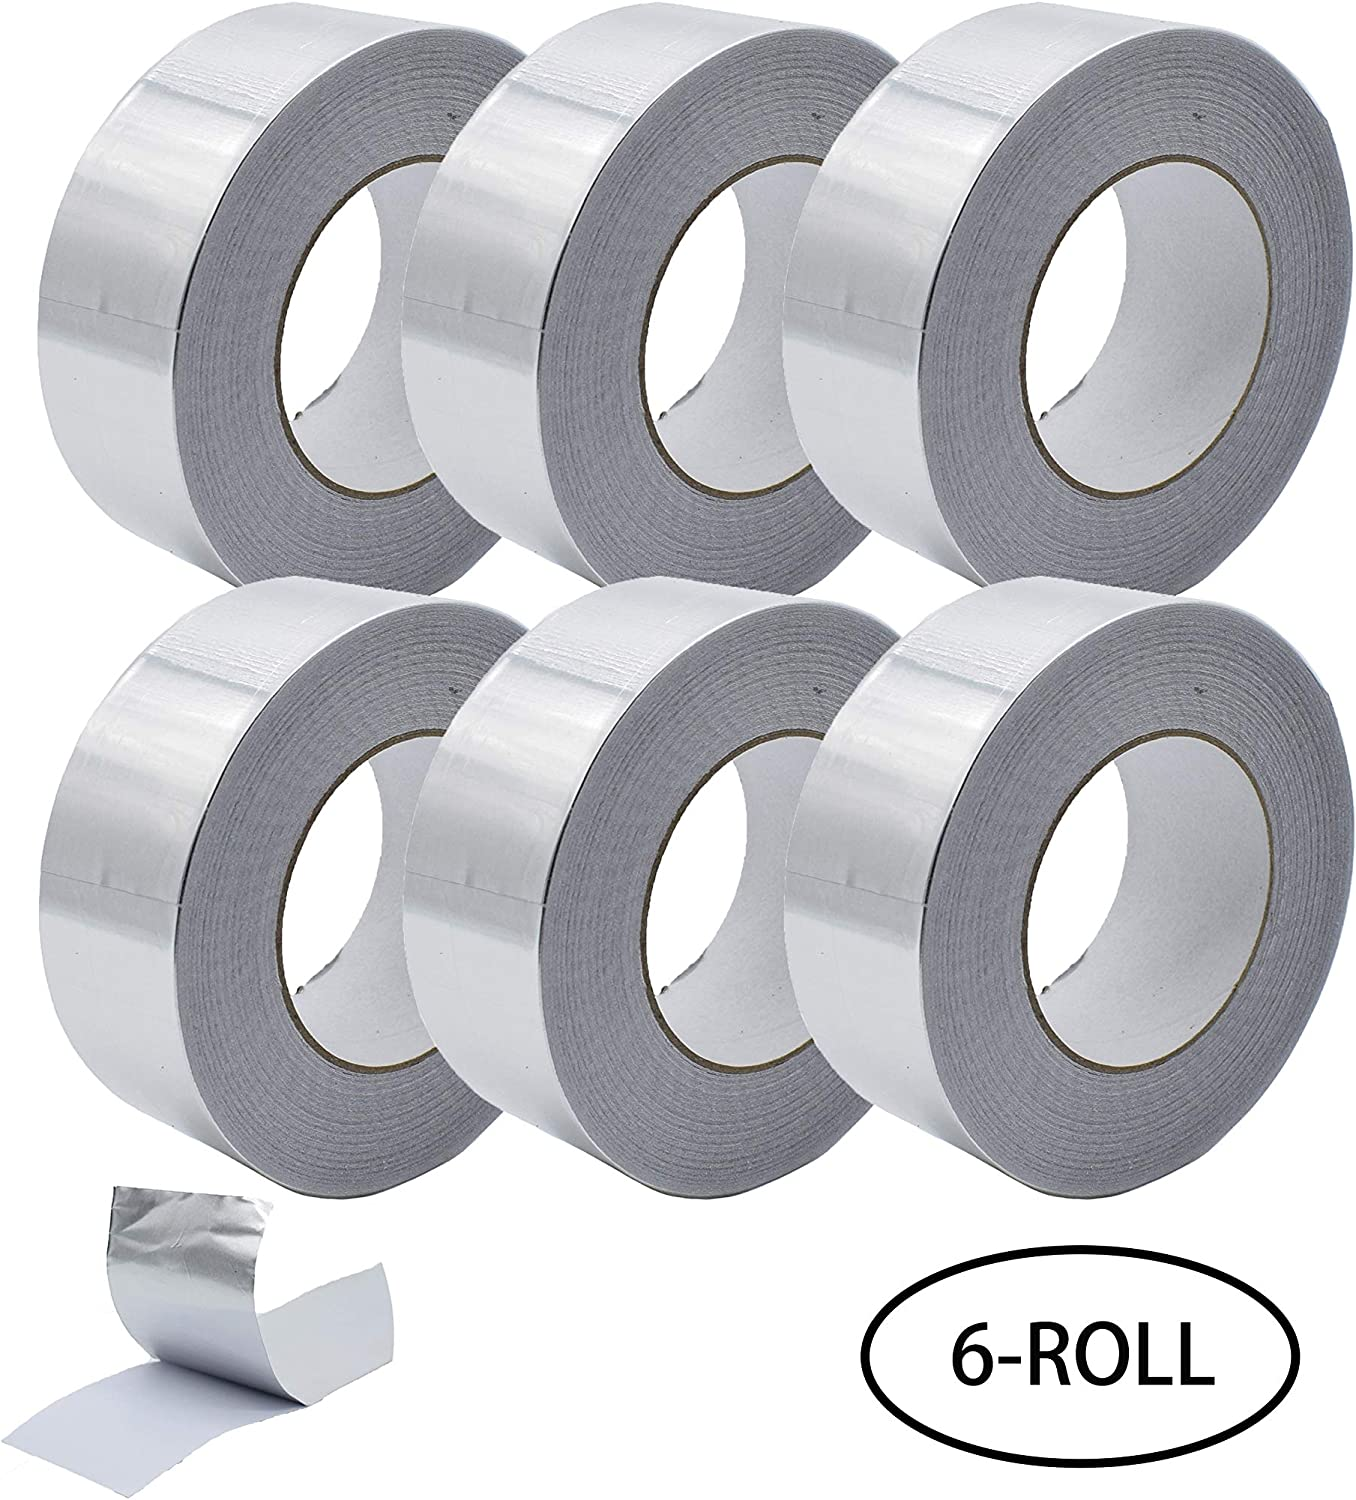 Aluminum Foil Tape, Aluminum Air Duct Tape, Professional Adhesive Aluminum Foil Tape for HVAC, Pipe, 2 in x 55 yd(3.9mil), 6-Roll Multi Pack